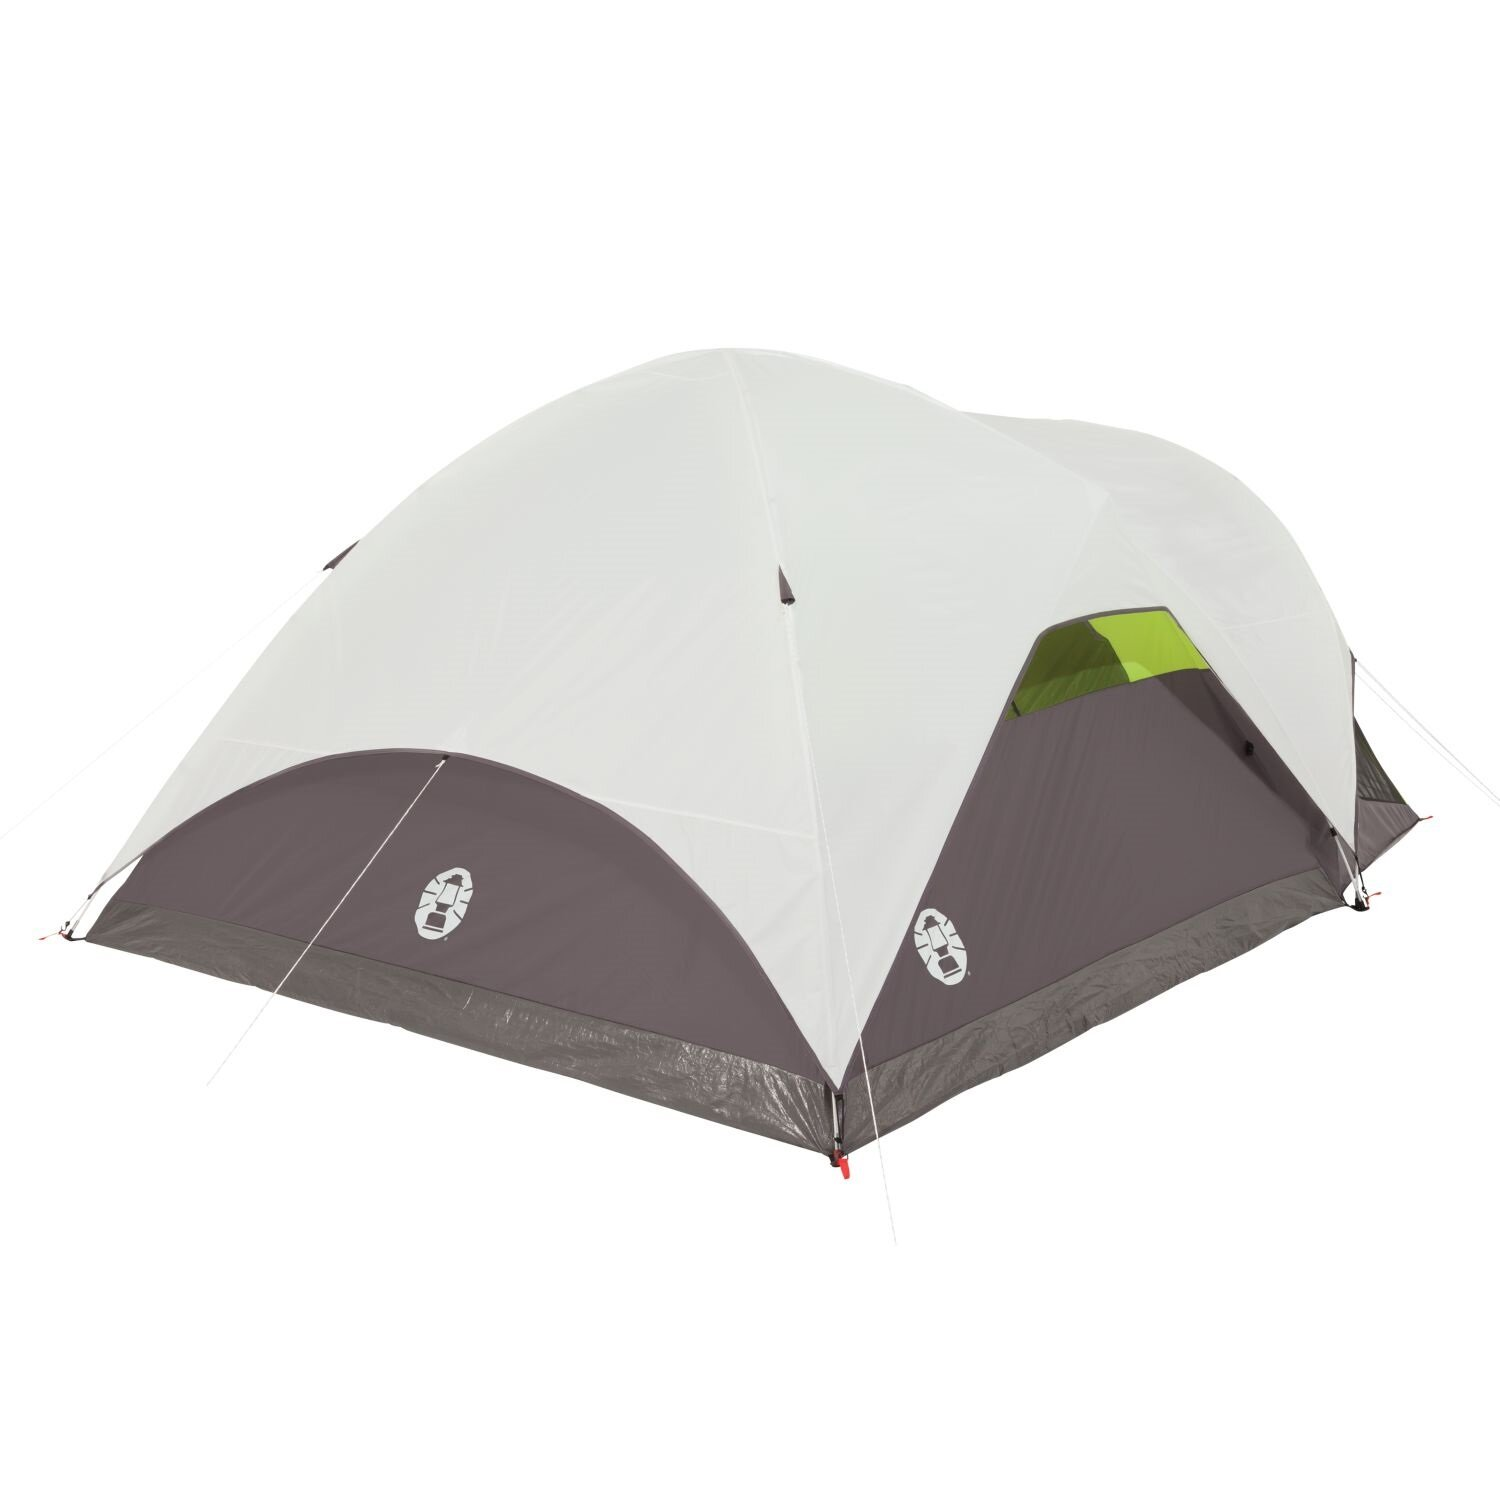 Coleman Steel Creek Fast Pitch Dome 6 Person Tent with Screen Room u0026 Reviews | Wayfair  sc 1 st  Wayfair & Coleman Steel Creek Fast Pitch Dome 6 Person Tent with Screen Room ...